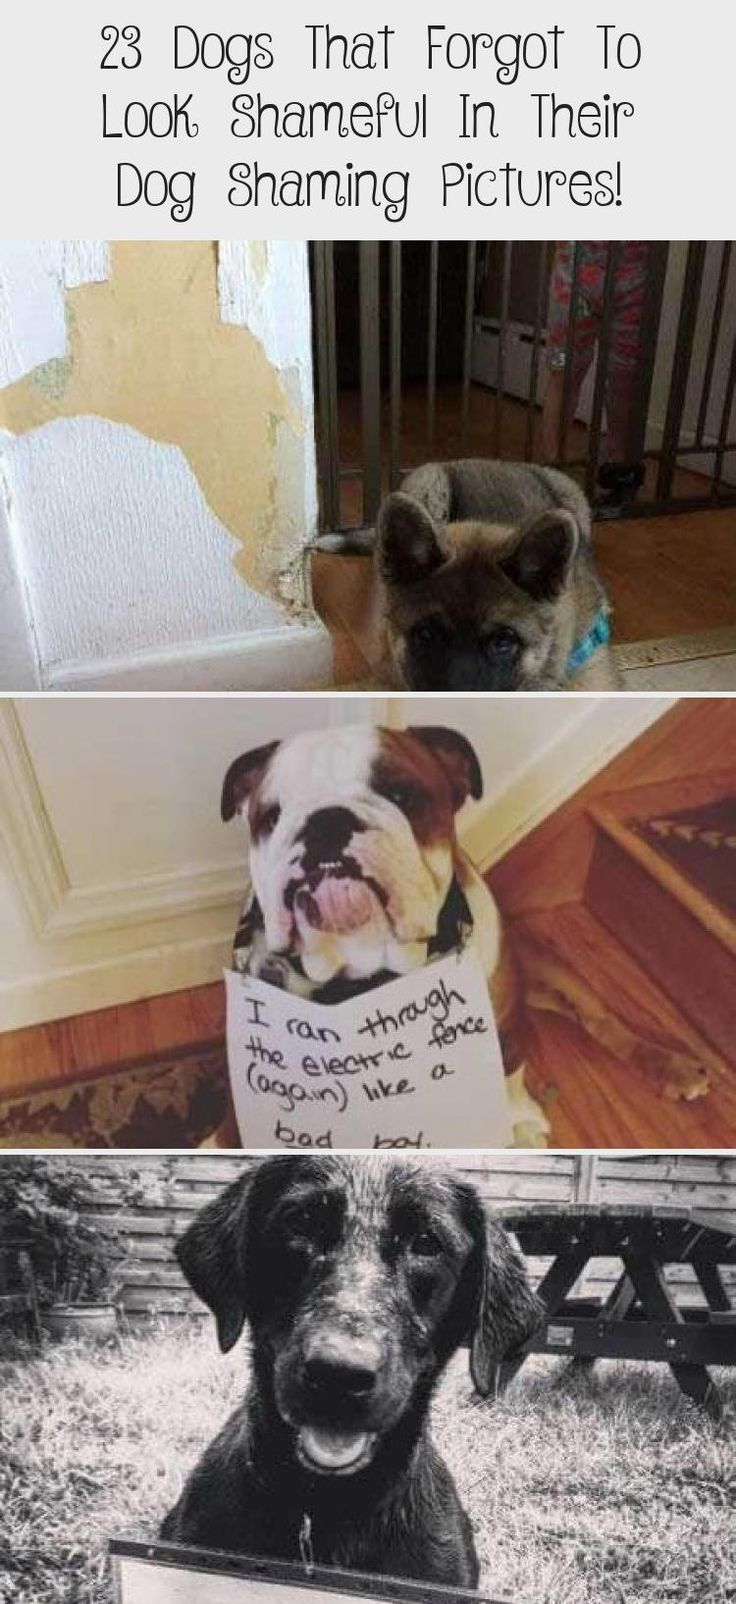 23 Dogs That Forgot To Look Shameful In Their Dog Shaming Pictures